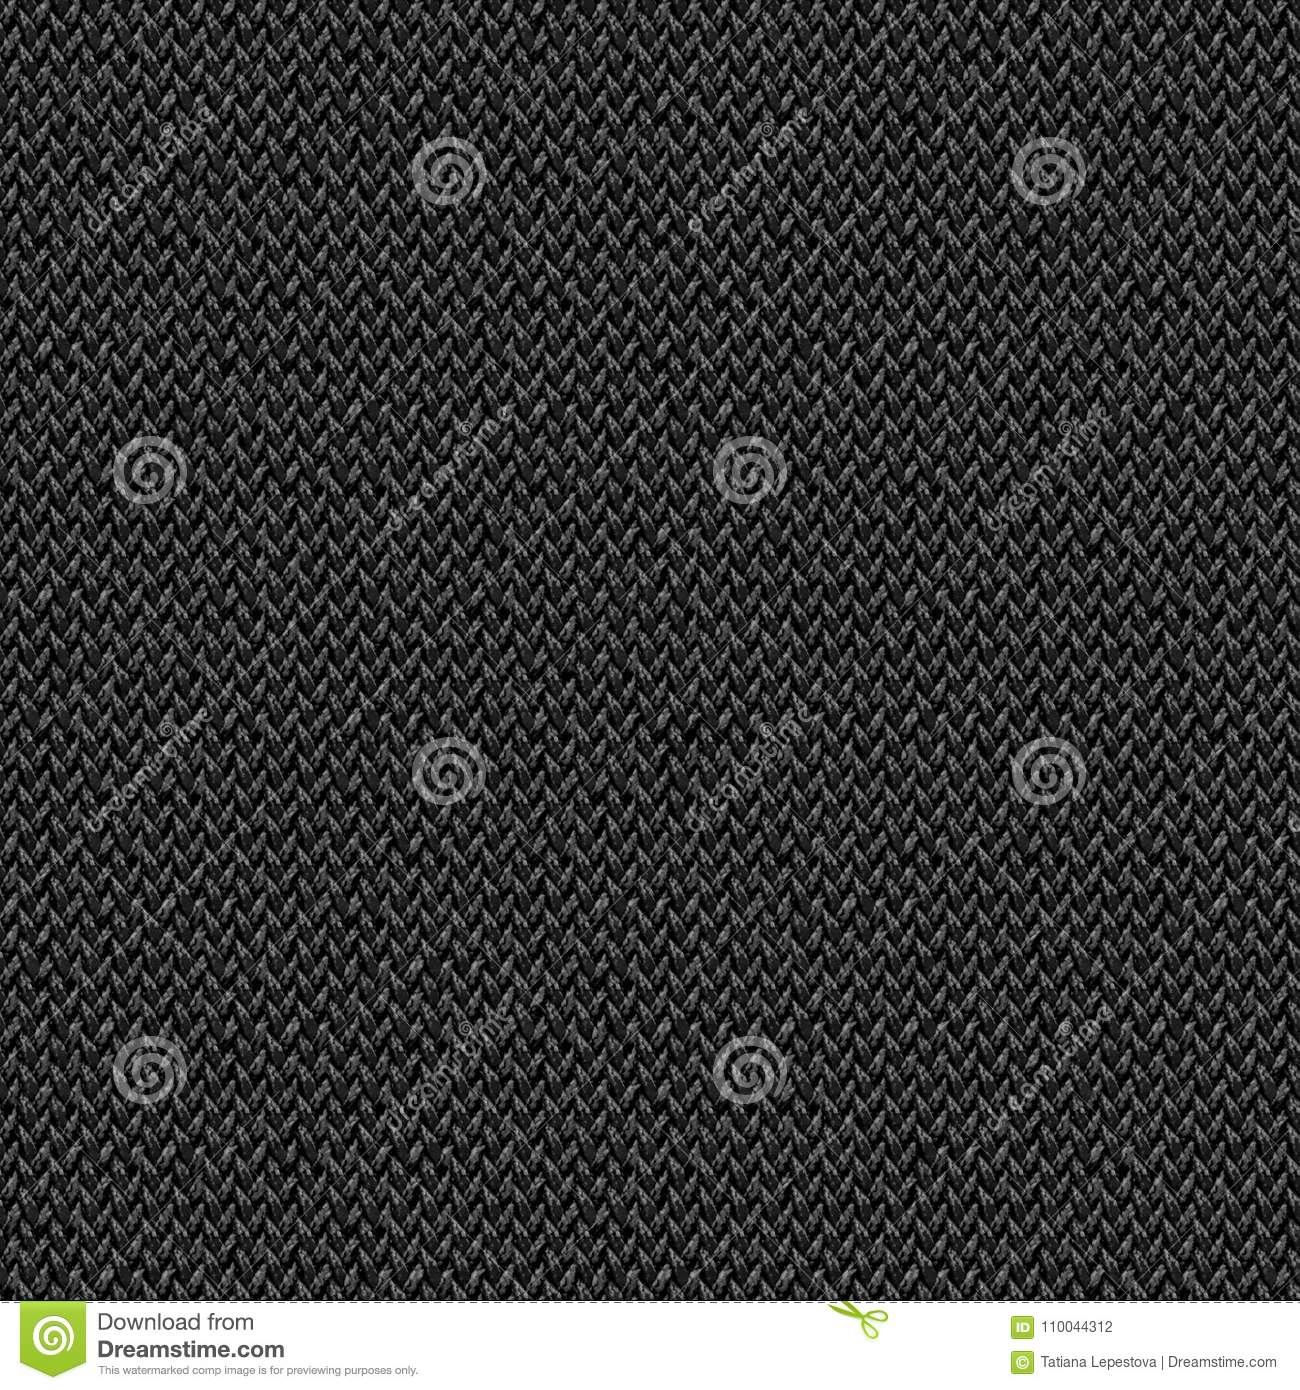 Black Fabric Accent Wall Seamless: Black Fabric Seamless Texture. Texture Map For 3d And 2d